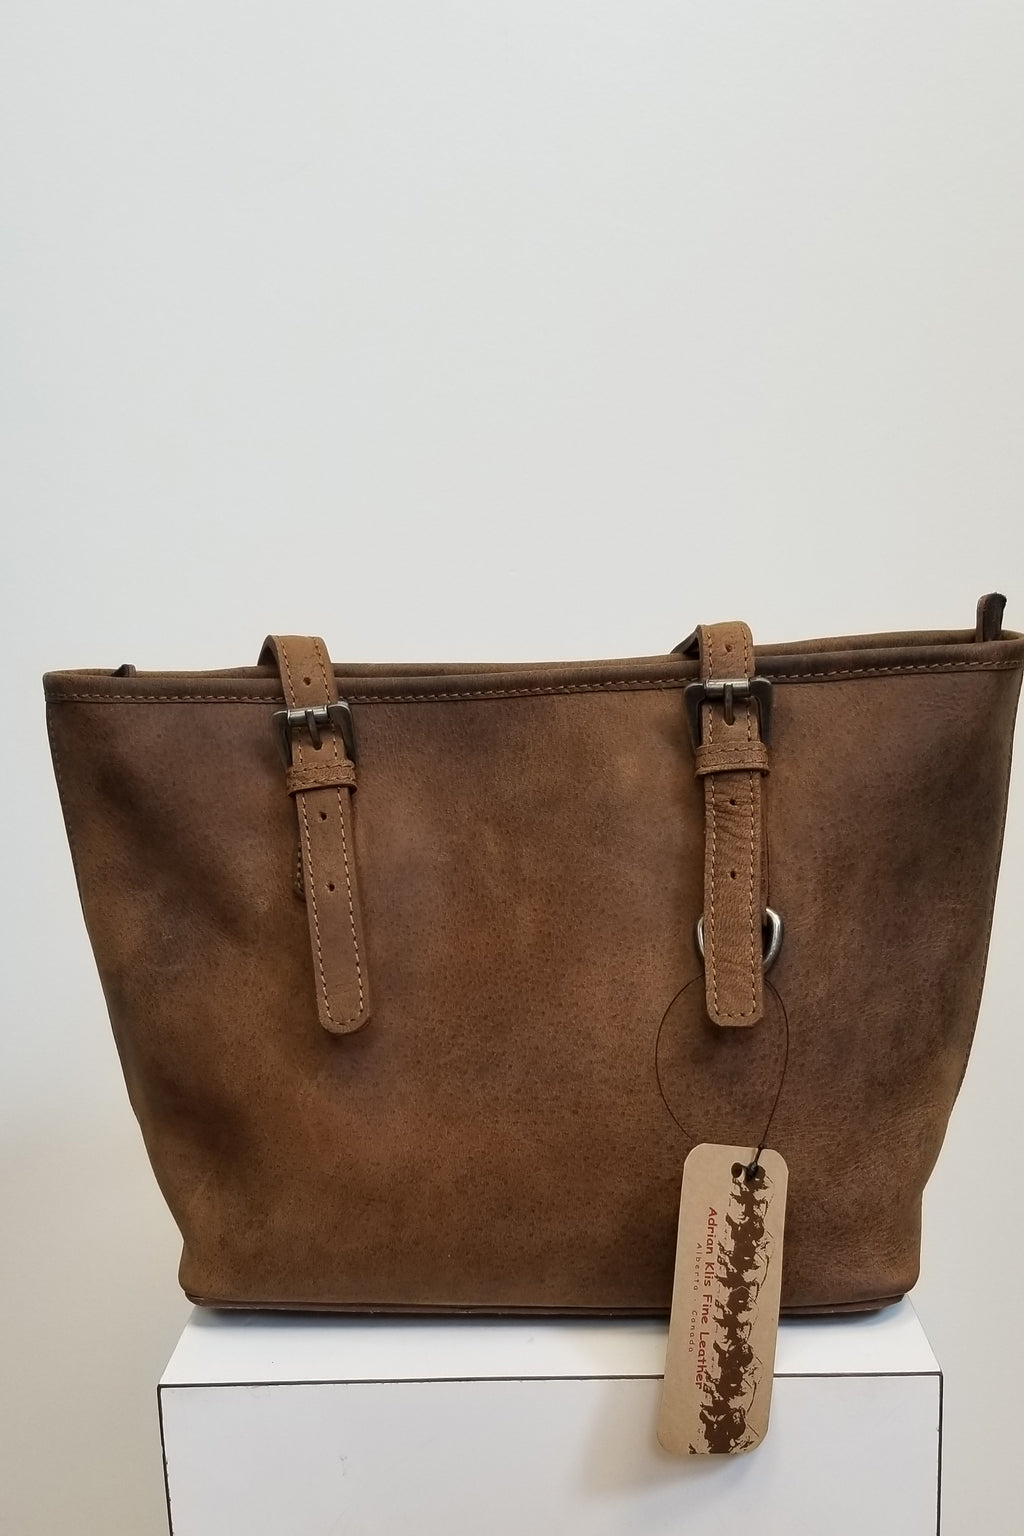 Adrian Klis Handbag 2784, Buffalo Leather - Blue Sky Clothing Co